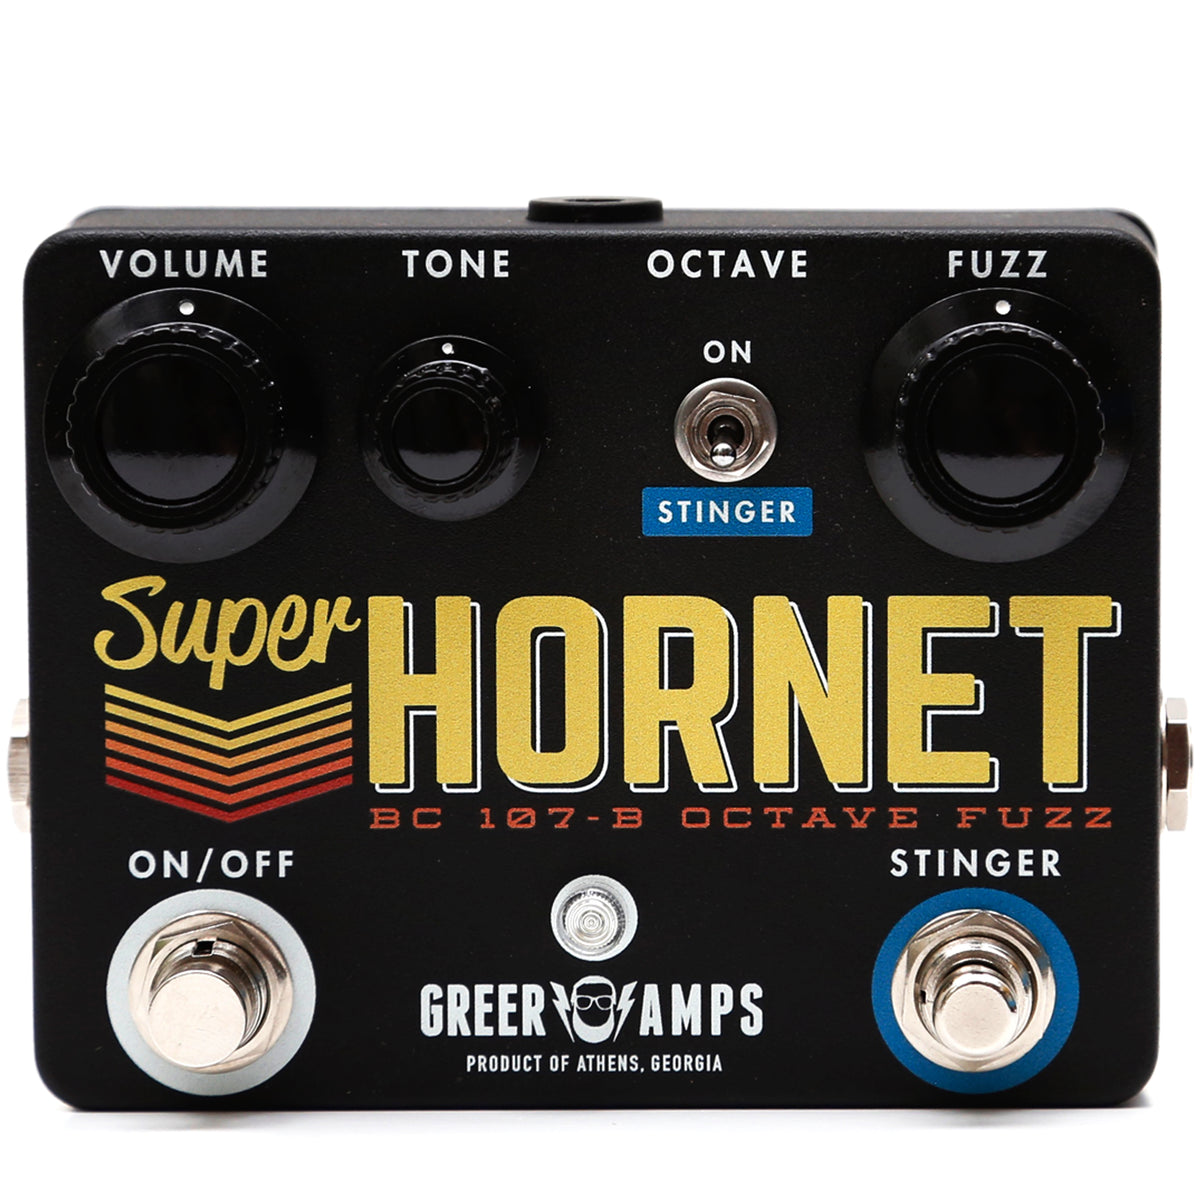 Greer Amps Super Hornet - Echoinox